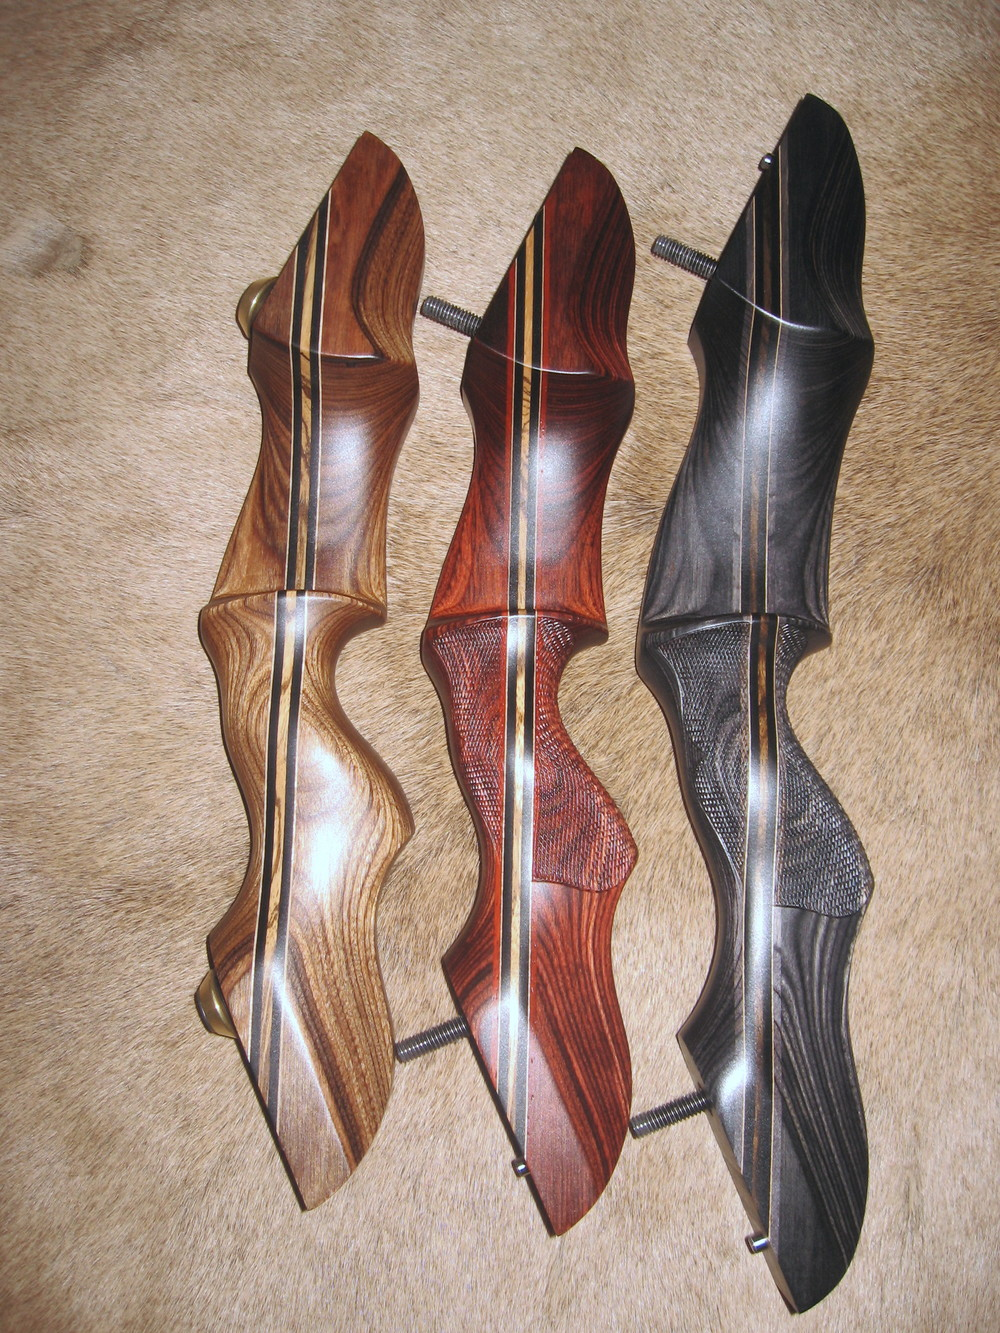 Examples of Standard Dymondwood Risers   (left to right)  Walnut, Rosewood and Charcoal